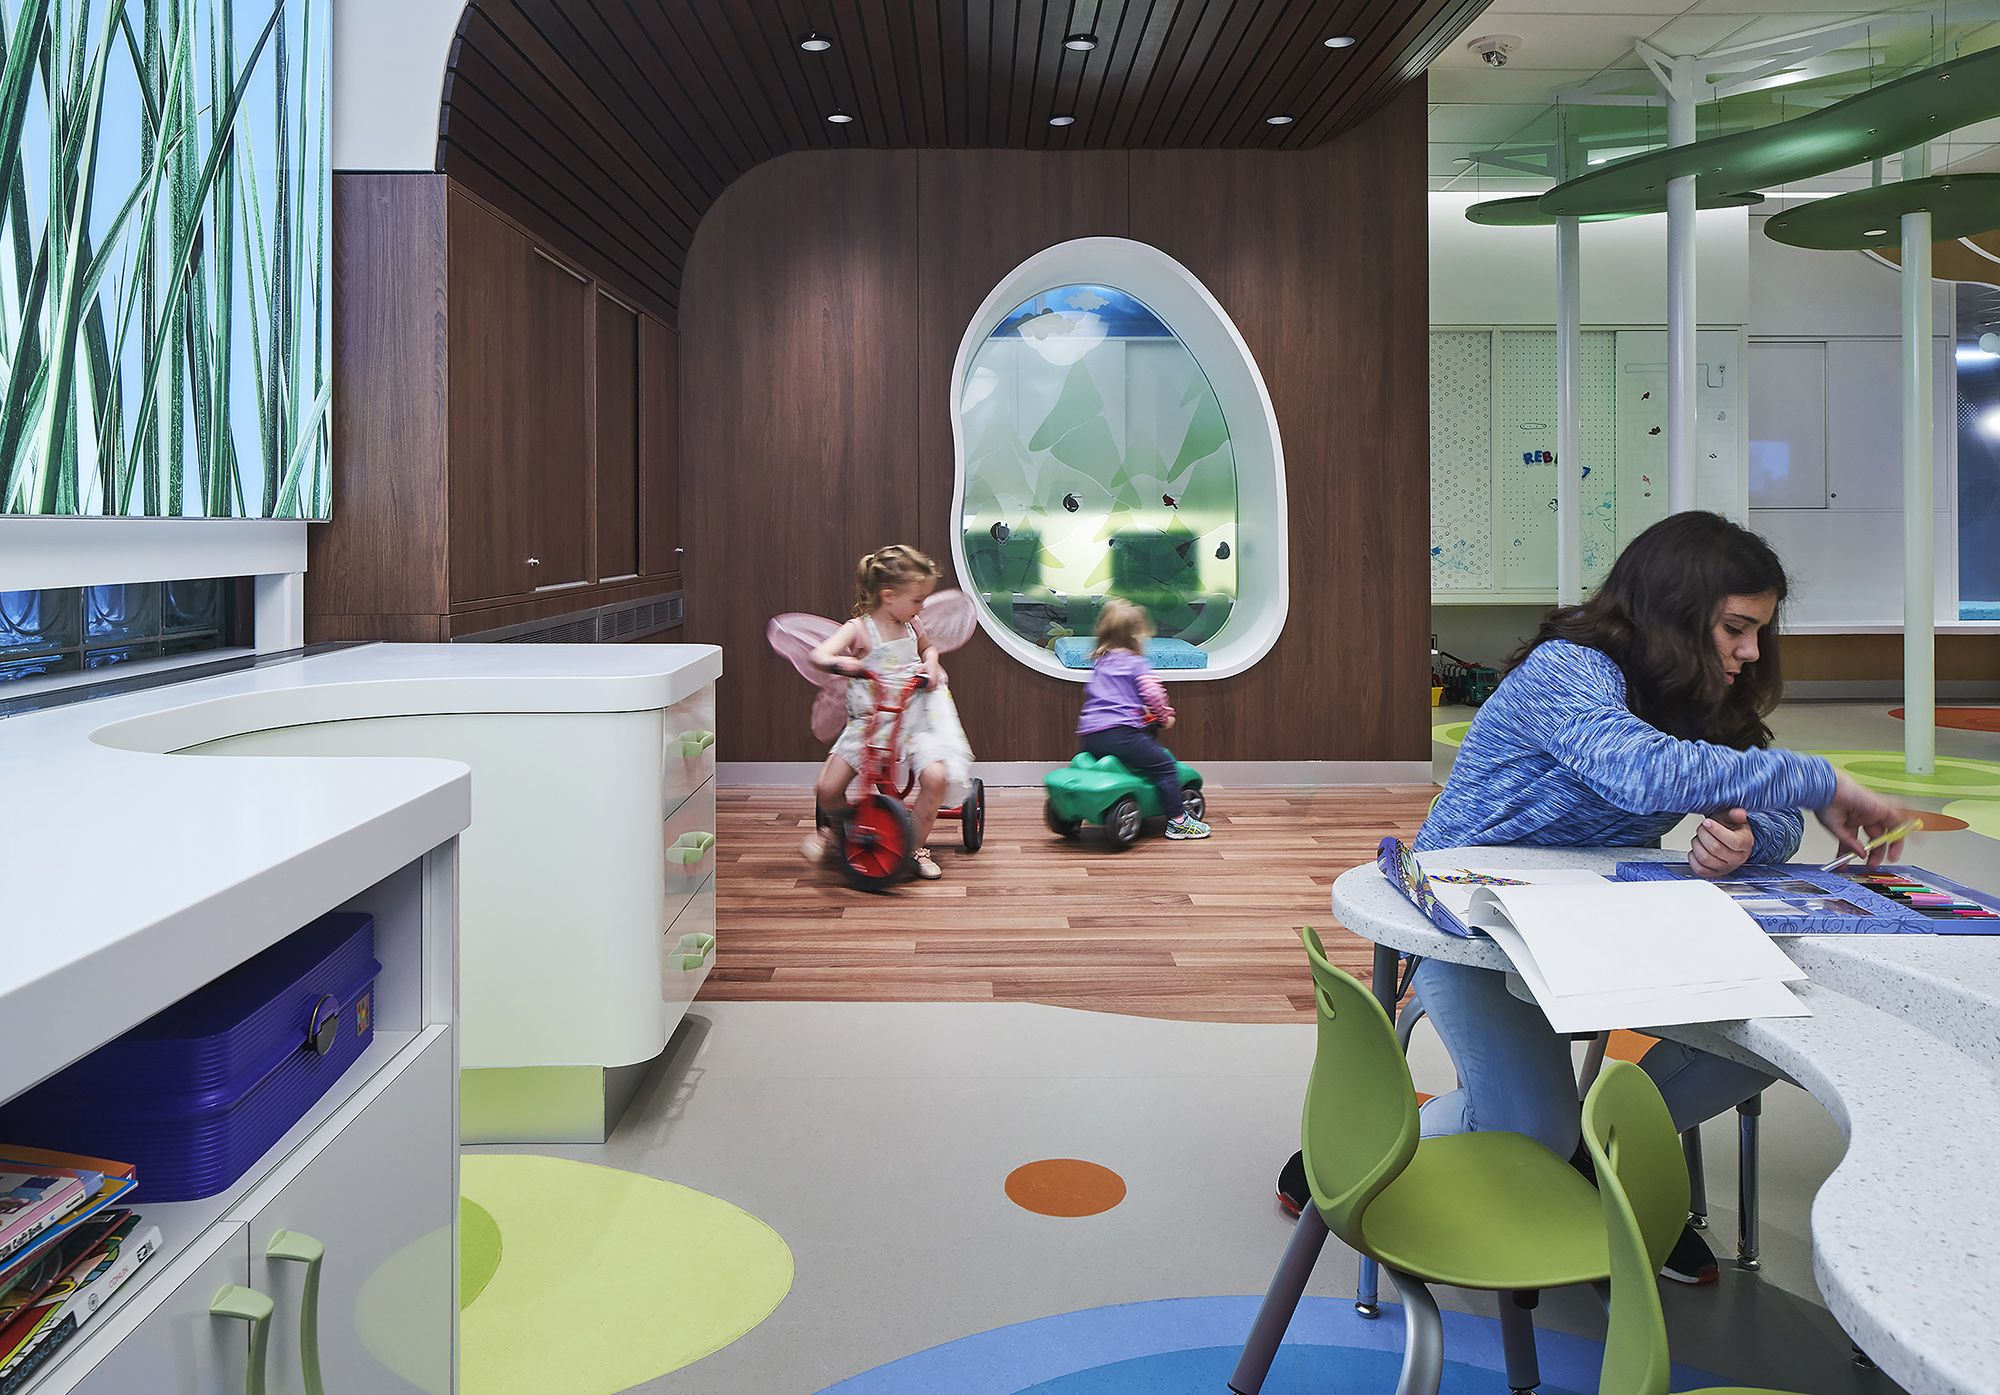 Designing healthcare spaces for kids infusing a sense of